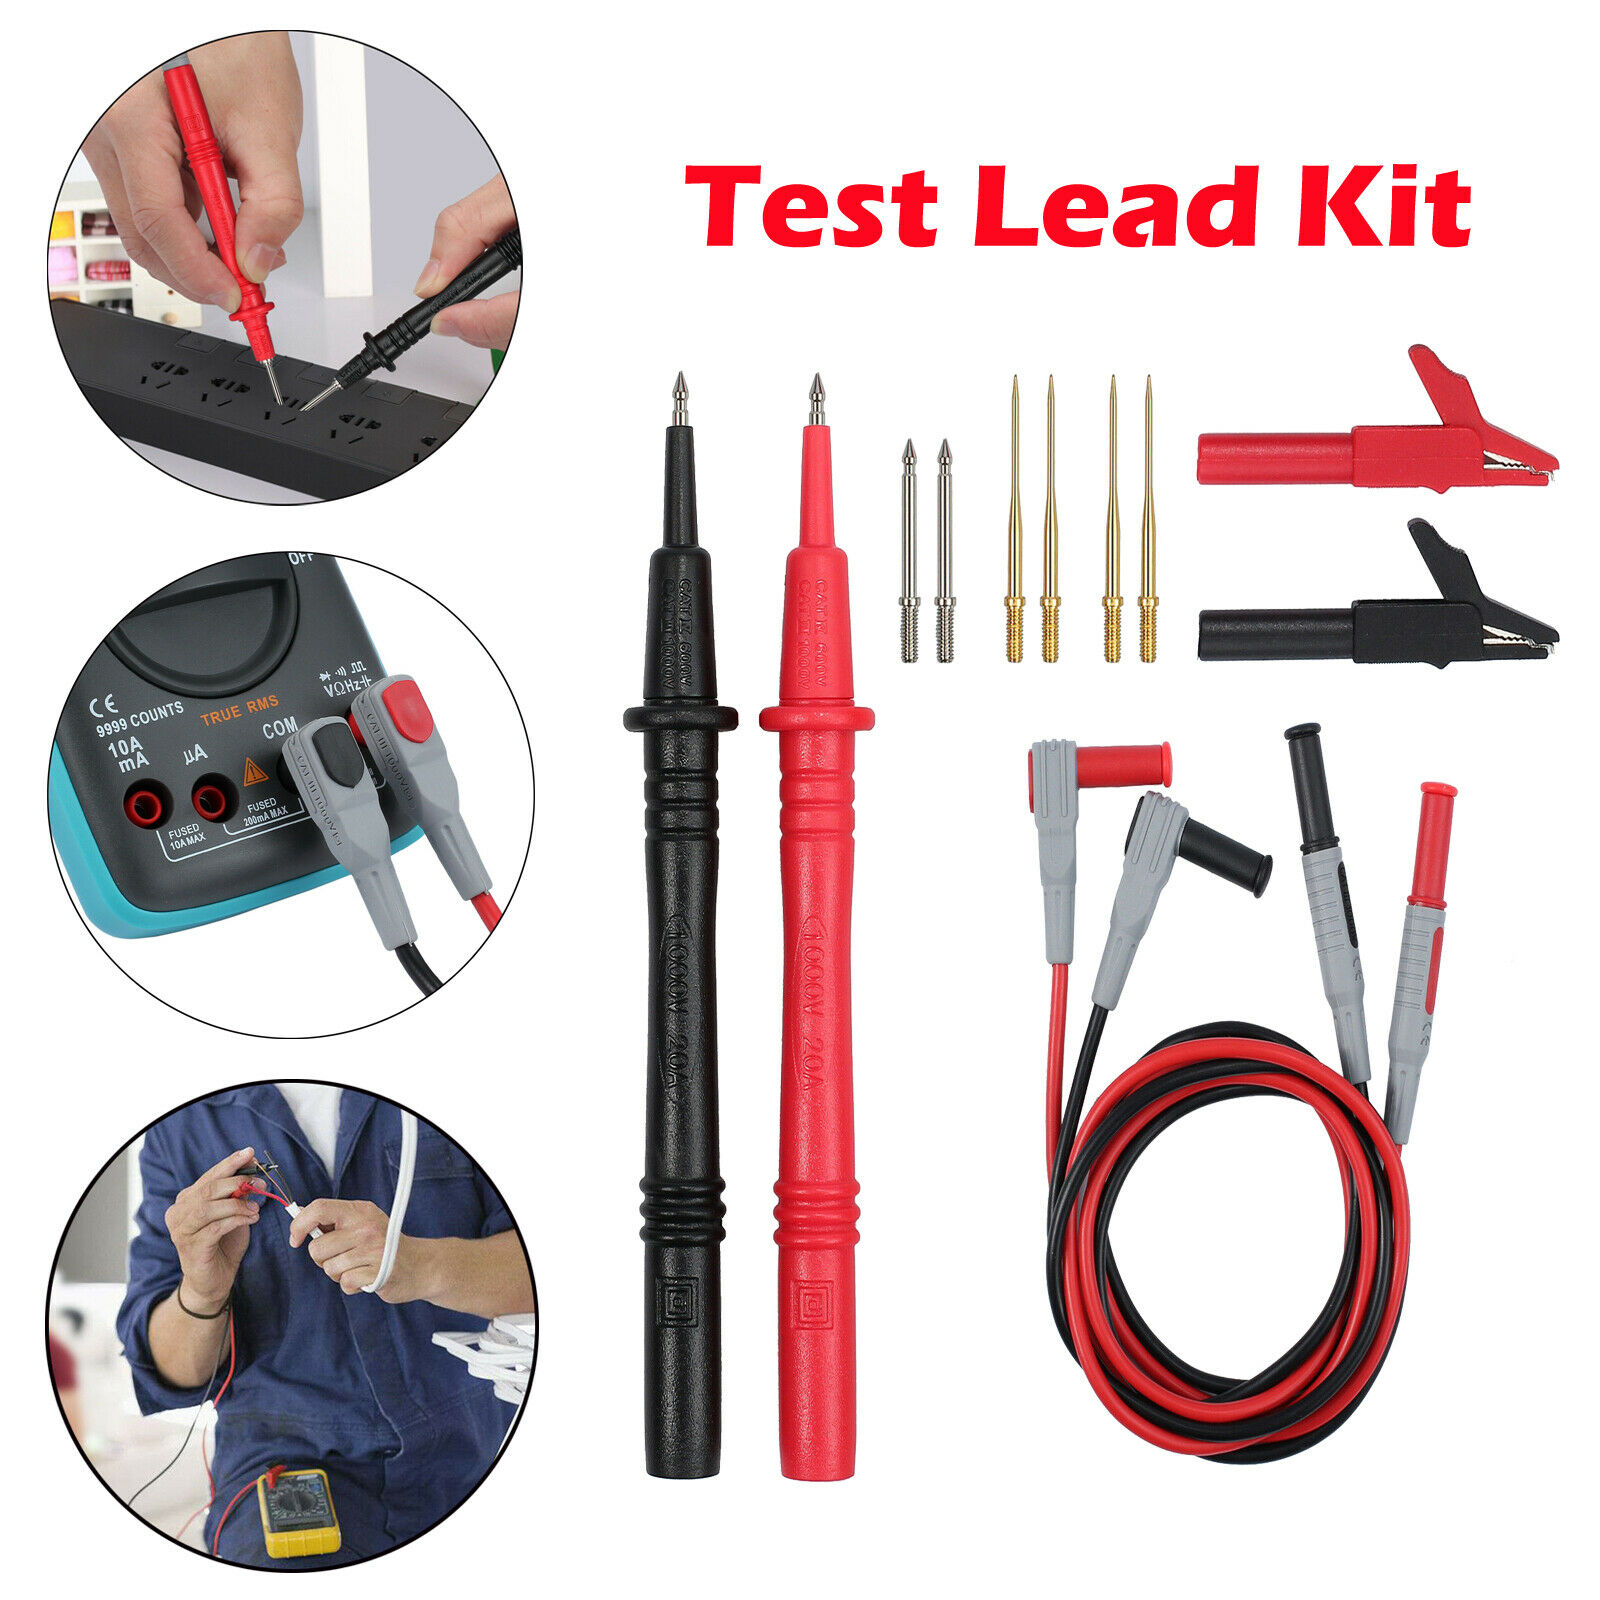 MULTIMETER TEST LEAD Kit Probe Alligator Clips 12 in 1 SET for Fluke ...